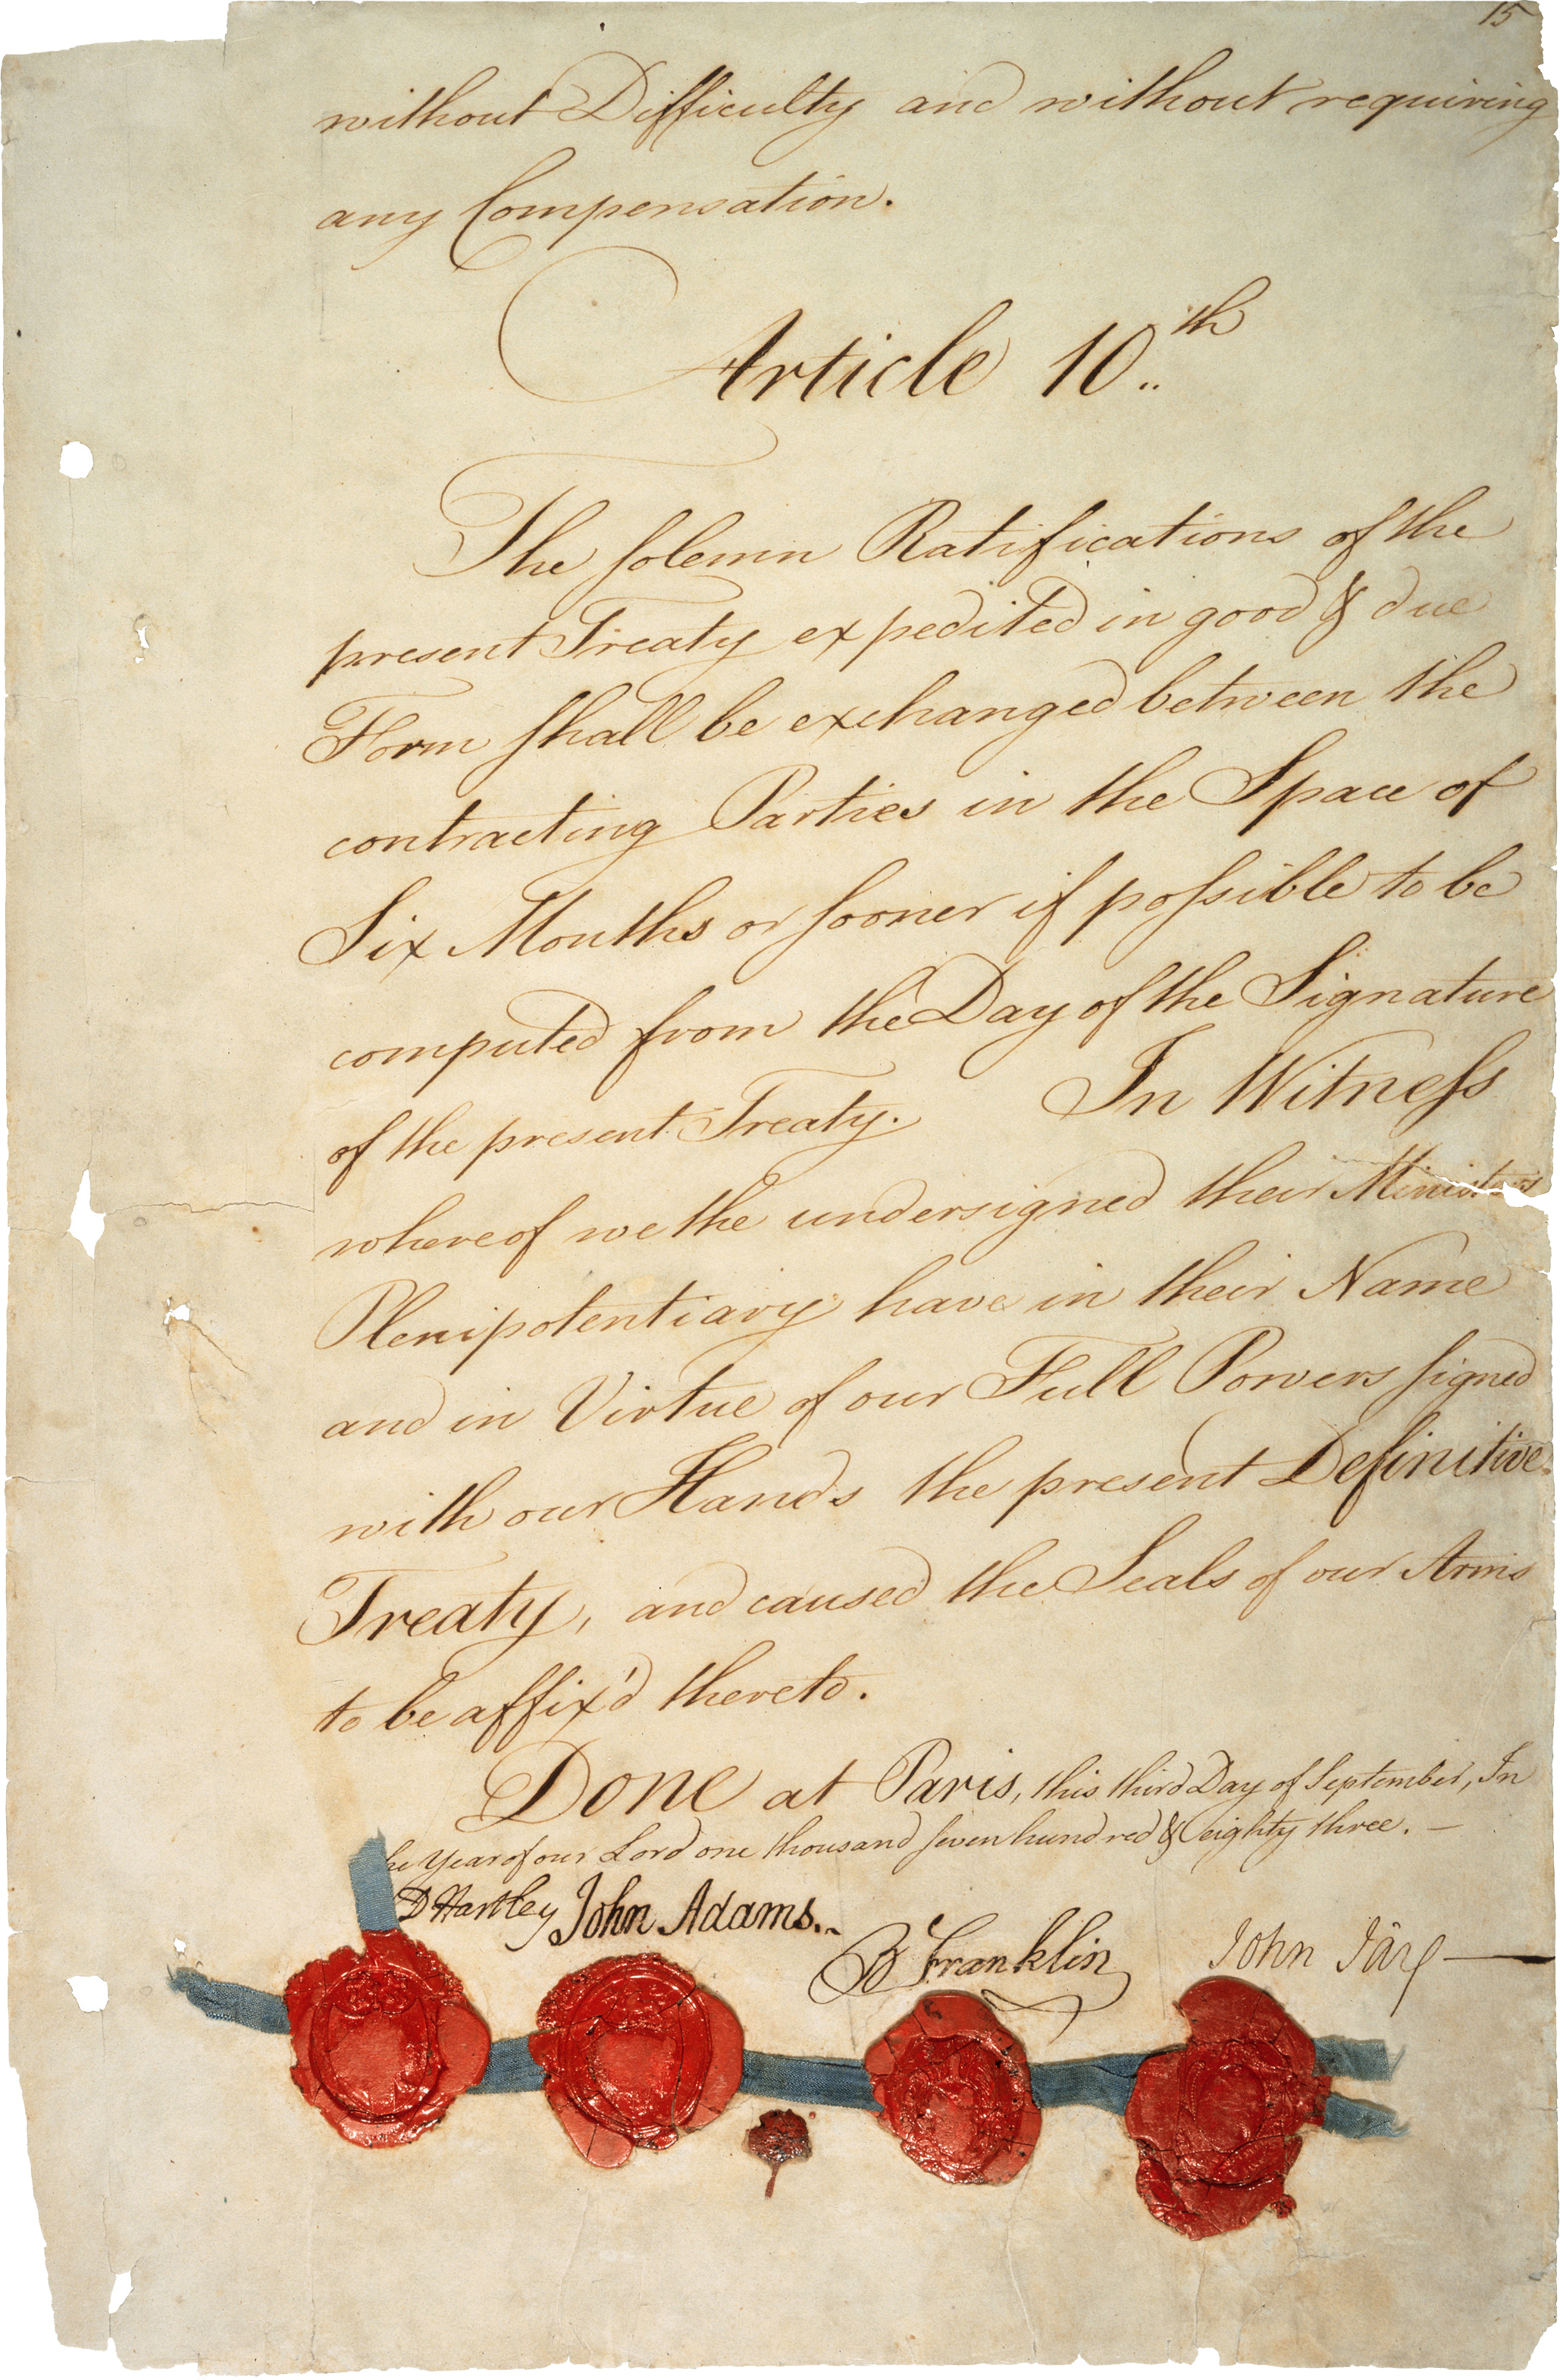 File:Treaty of Paris 1783 - last page (hi-res).jpg - Wikipedia ...